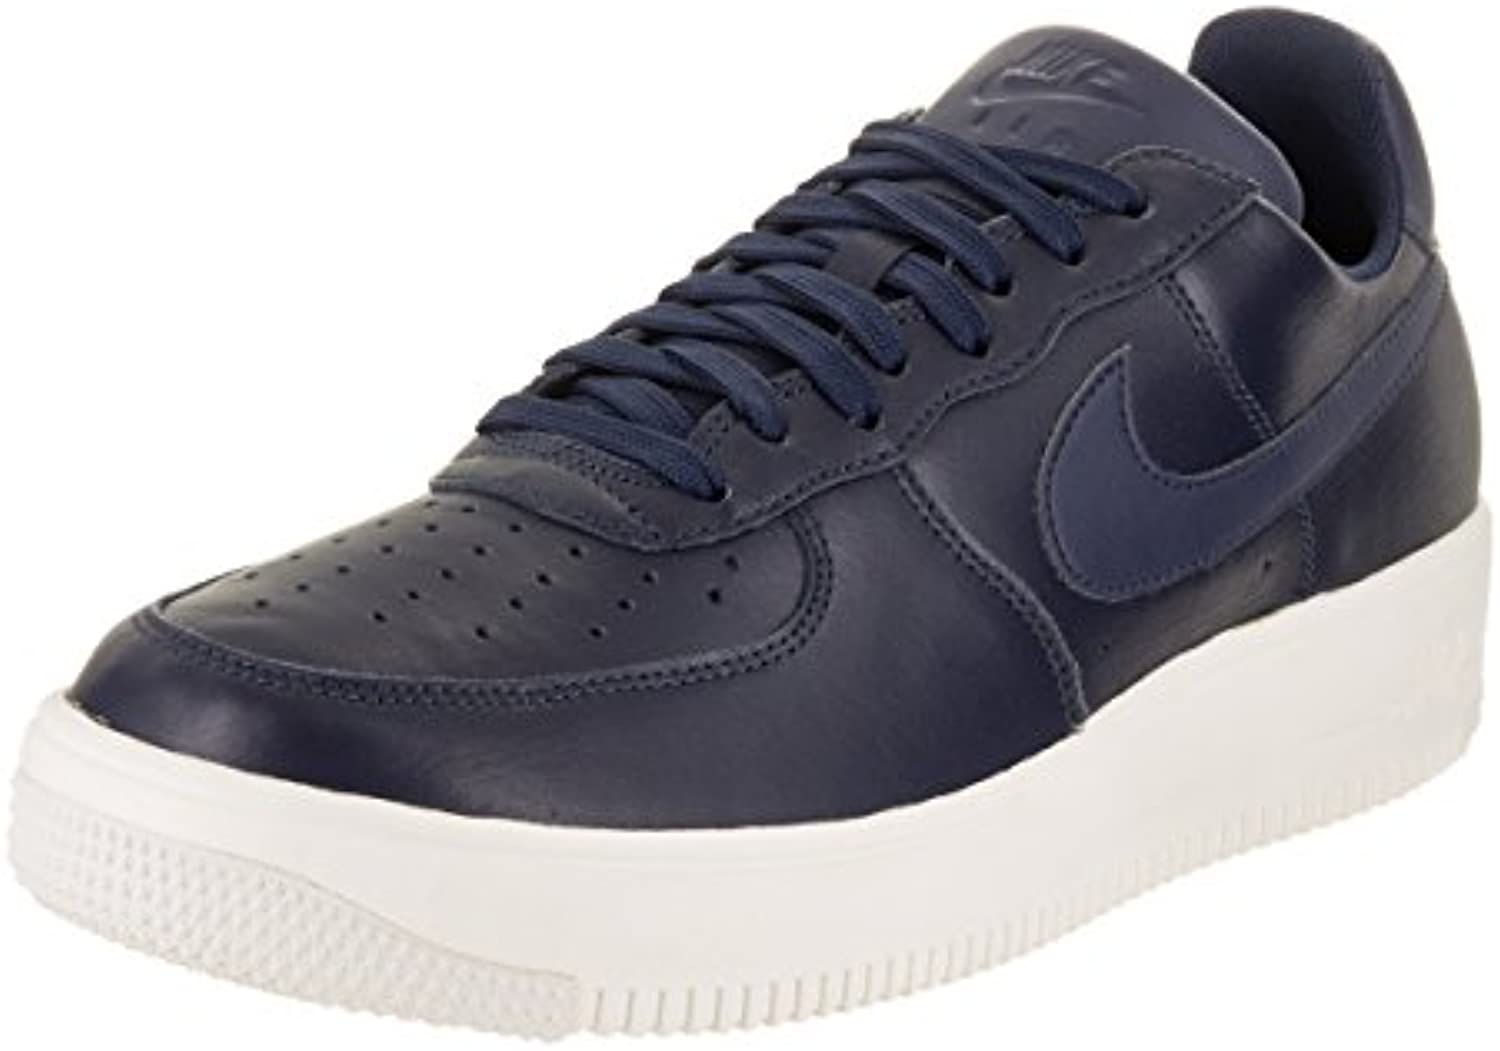 Nike - 845052 001 Hombres  -